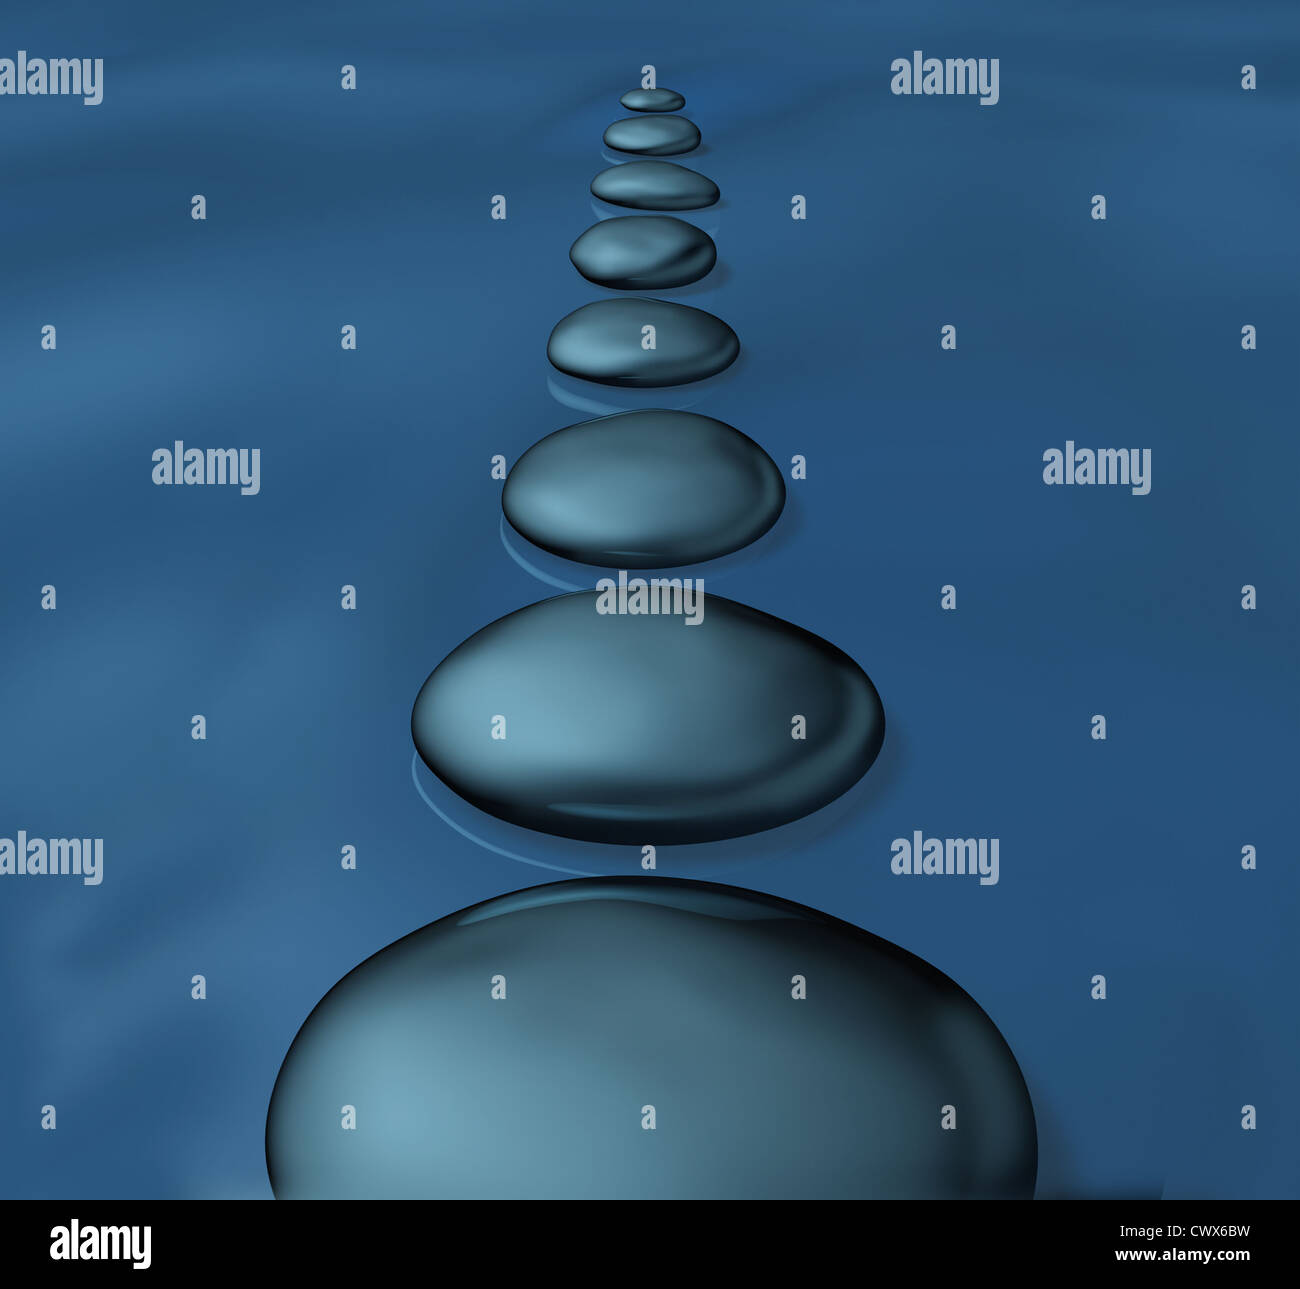 Stepping Stones With Smooth Rocks In Water As A Symbol Of